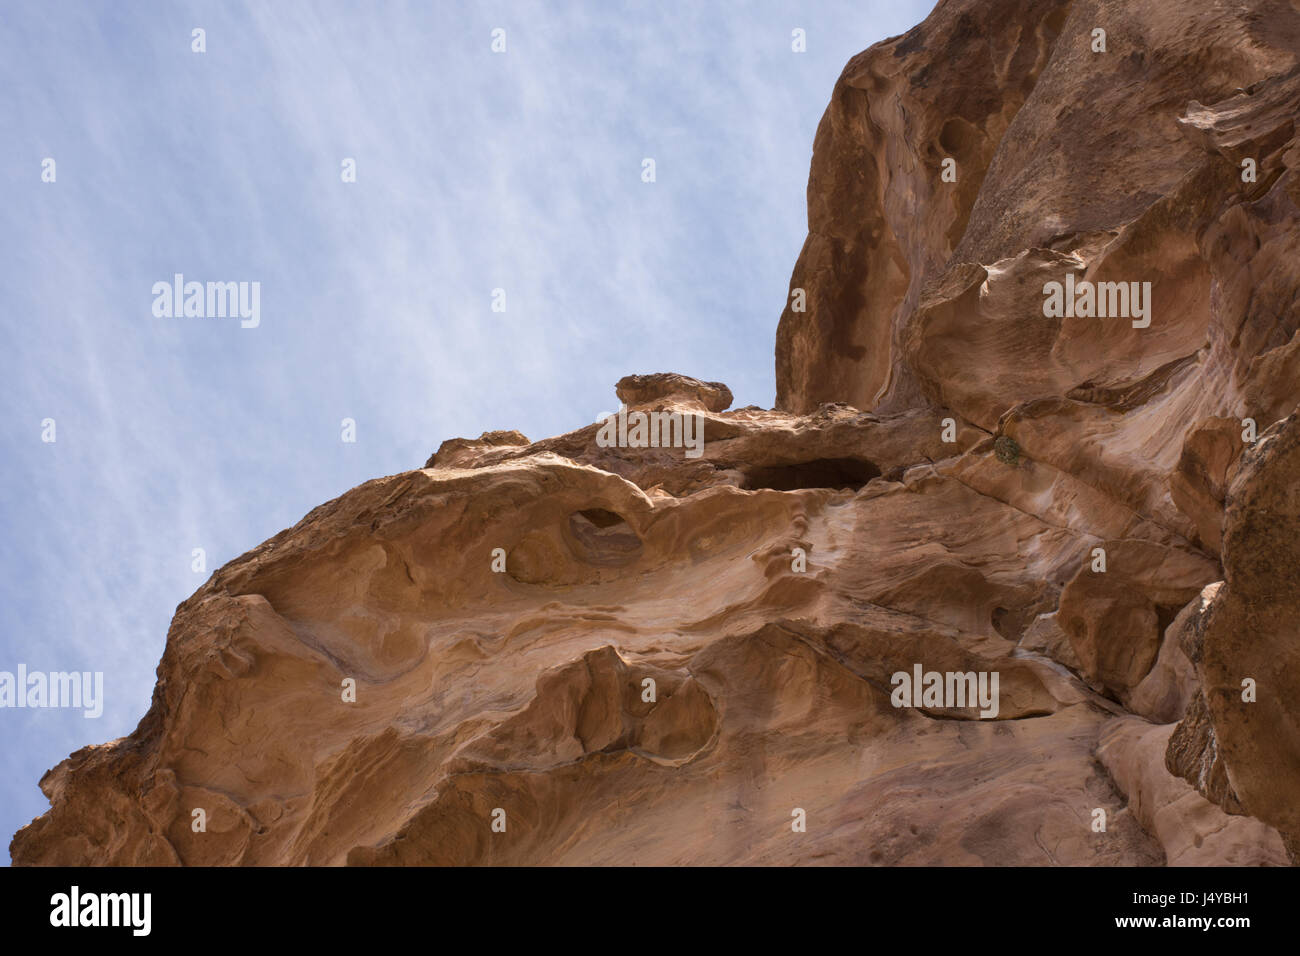 The steep sandstone walls of a natural mountain fault that leads to the Treasury, Al Khazneh, in Petra, Jordan. Stock Photo